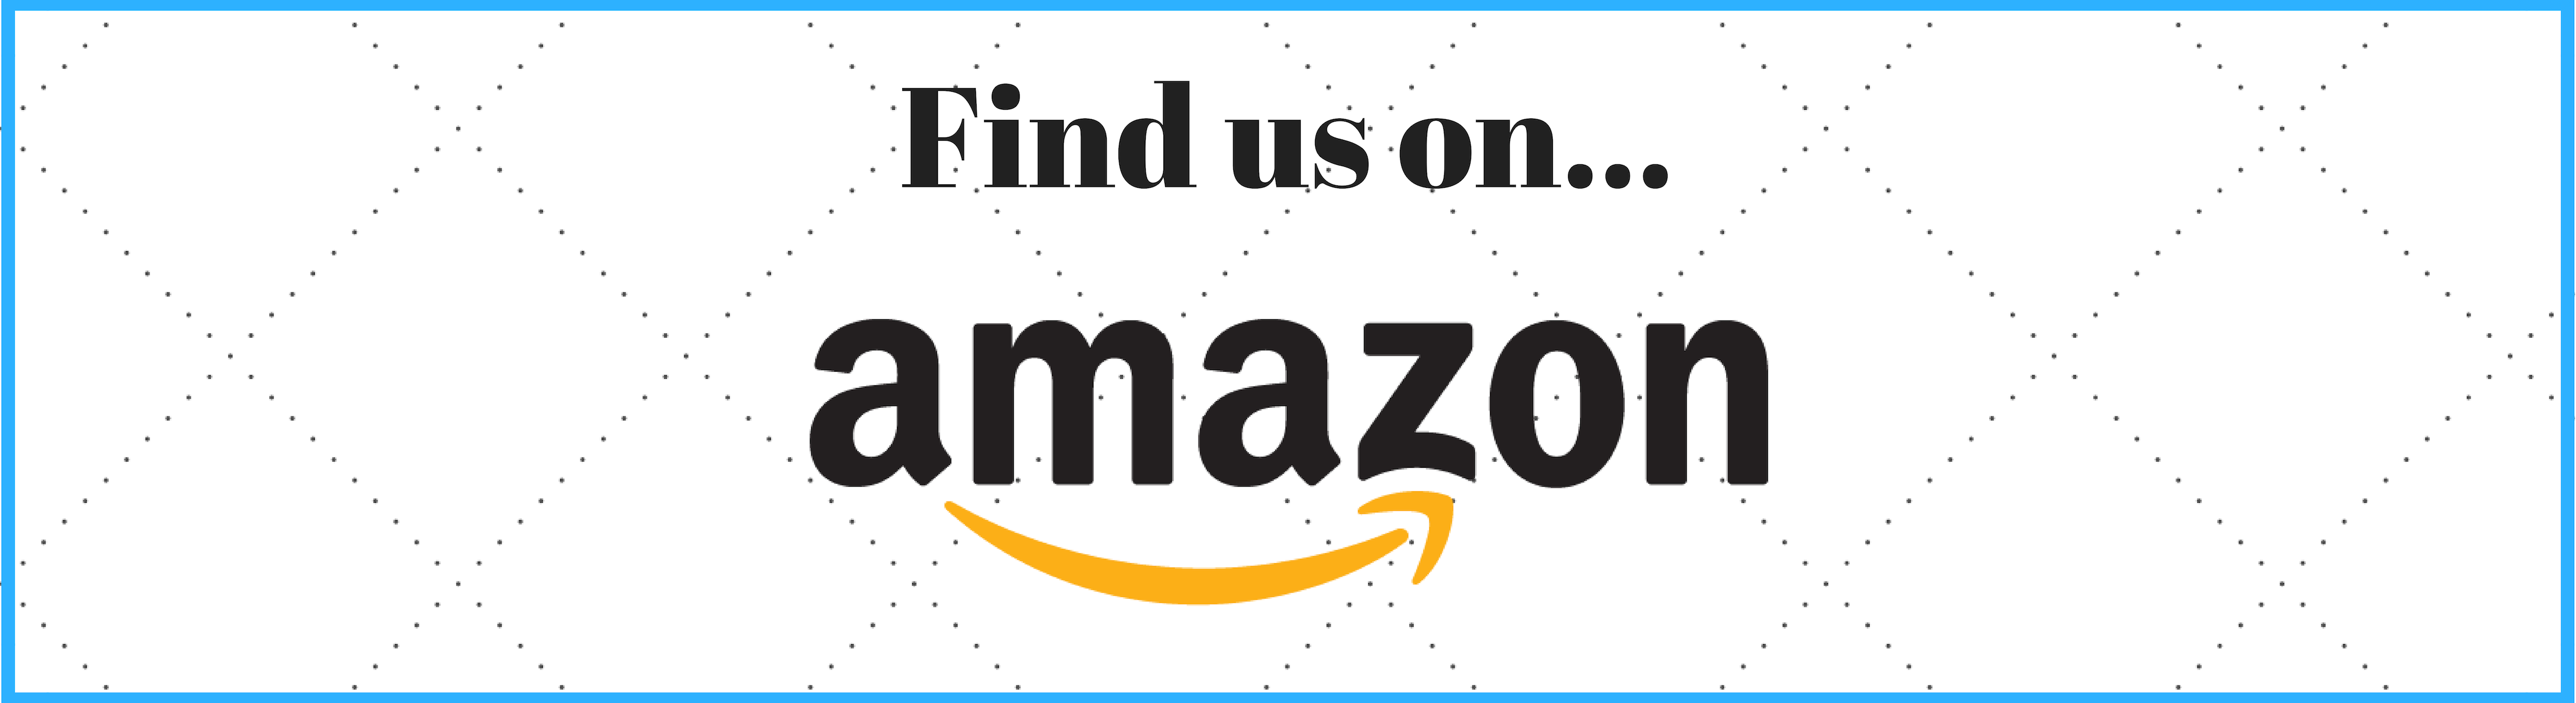 Find us on ... Amazon